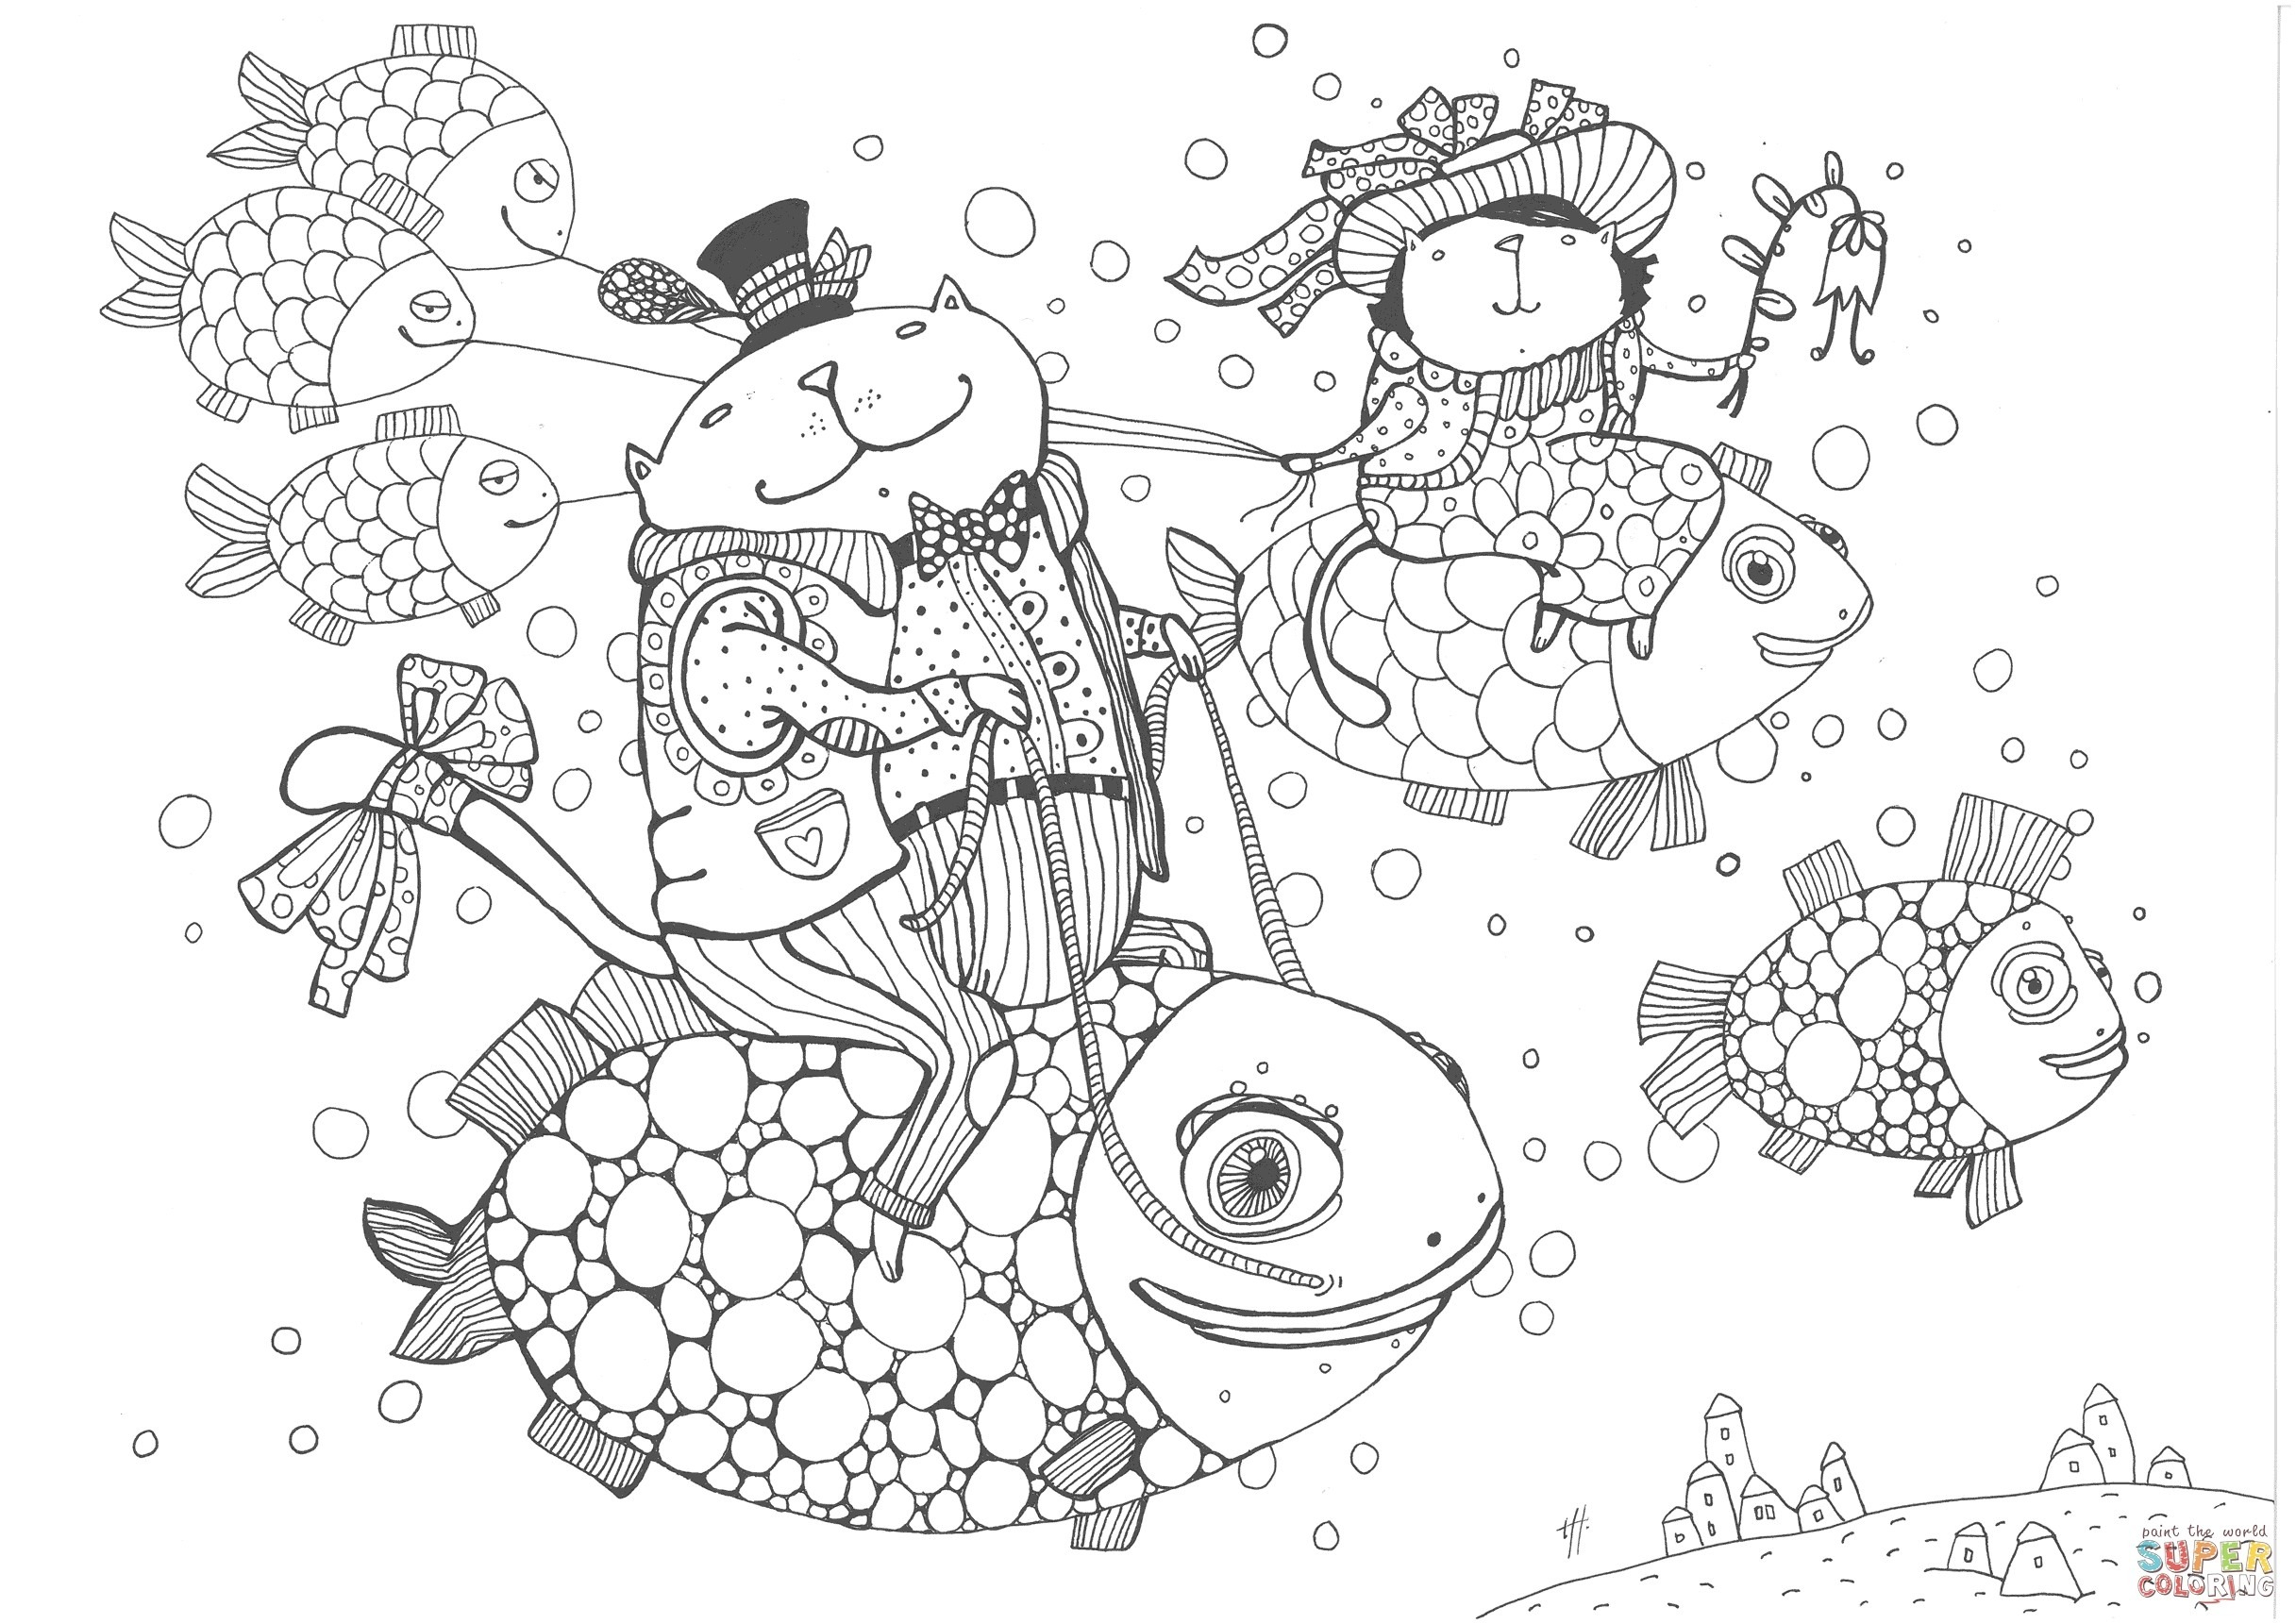 coloring pages that you can color on the computer Collection-Maine Coloring Pages Coloring Pages that You Can Color the Puter Lovely Cool Od Dog 19-n